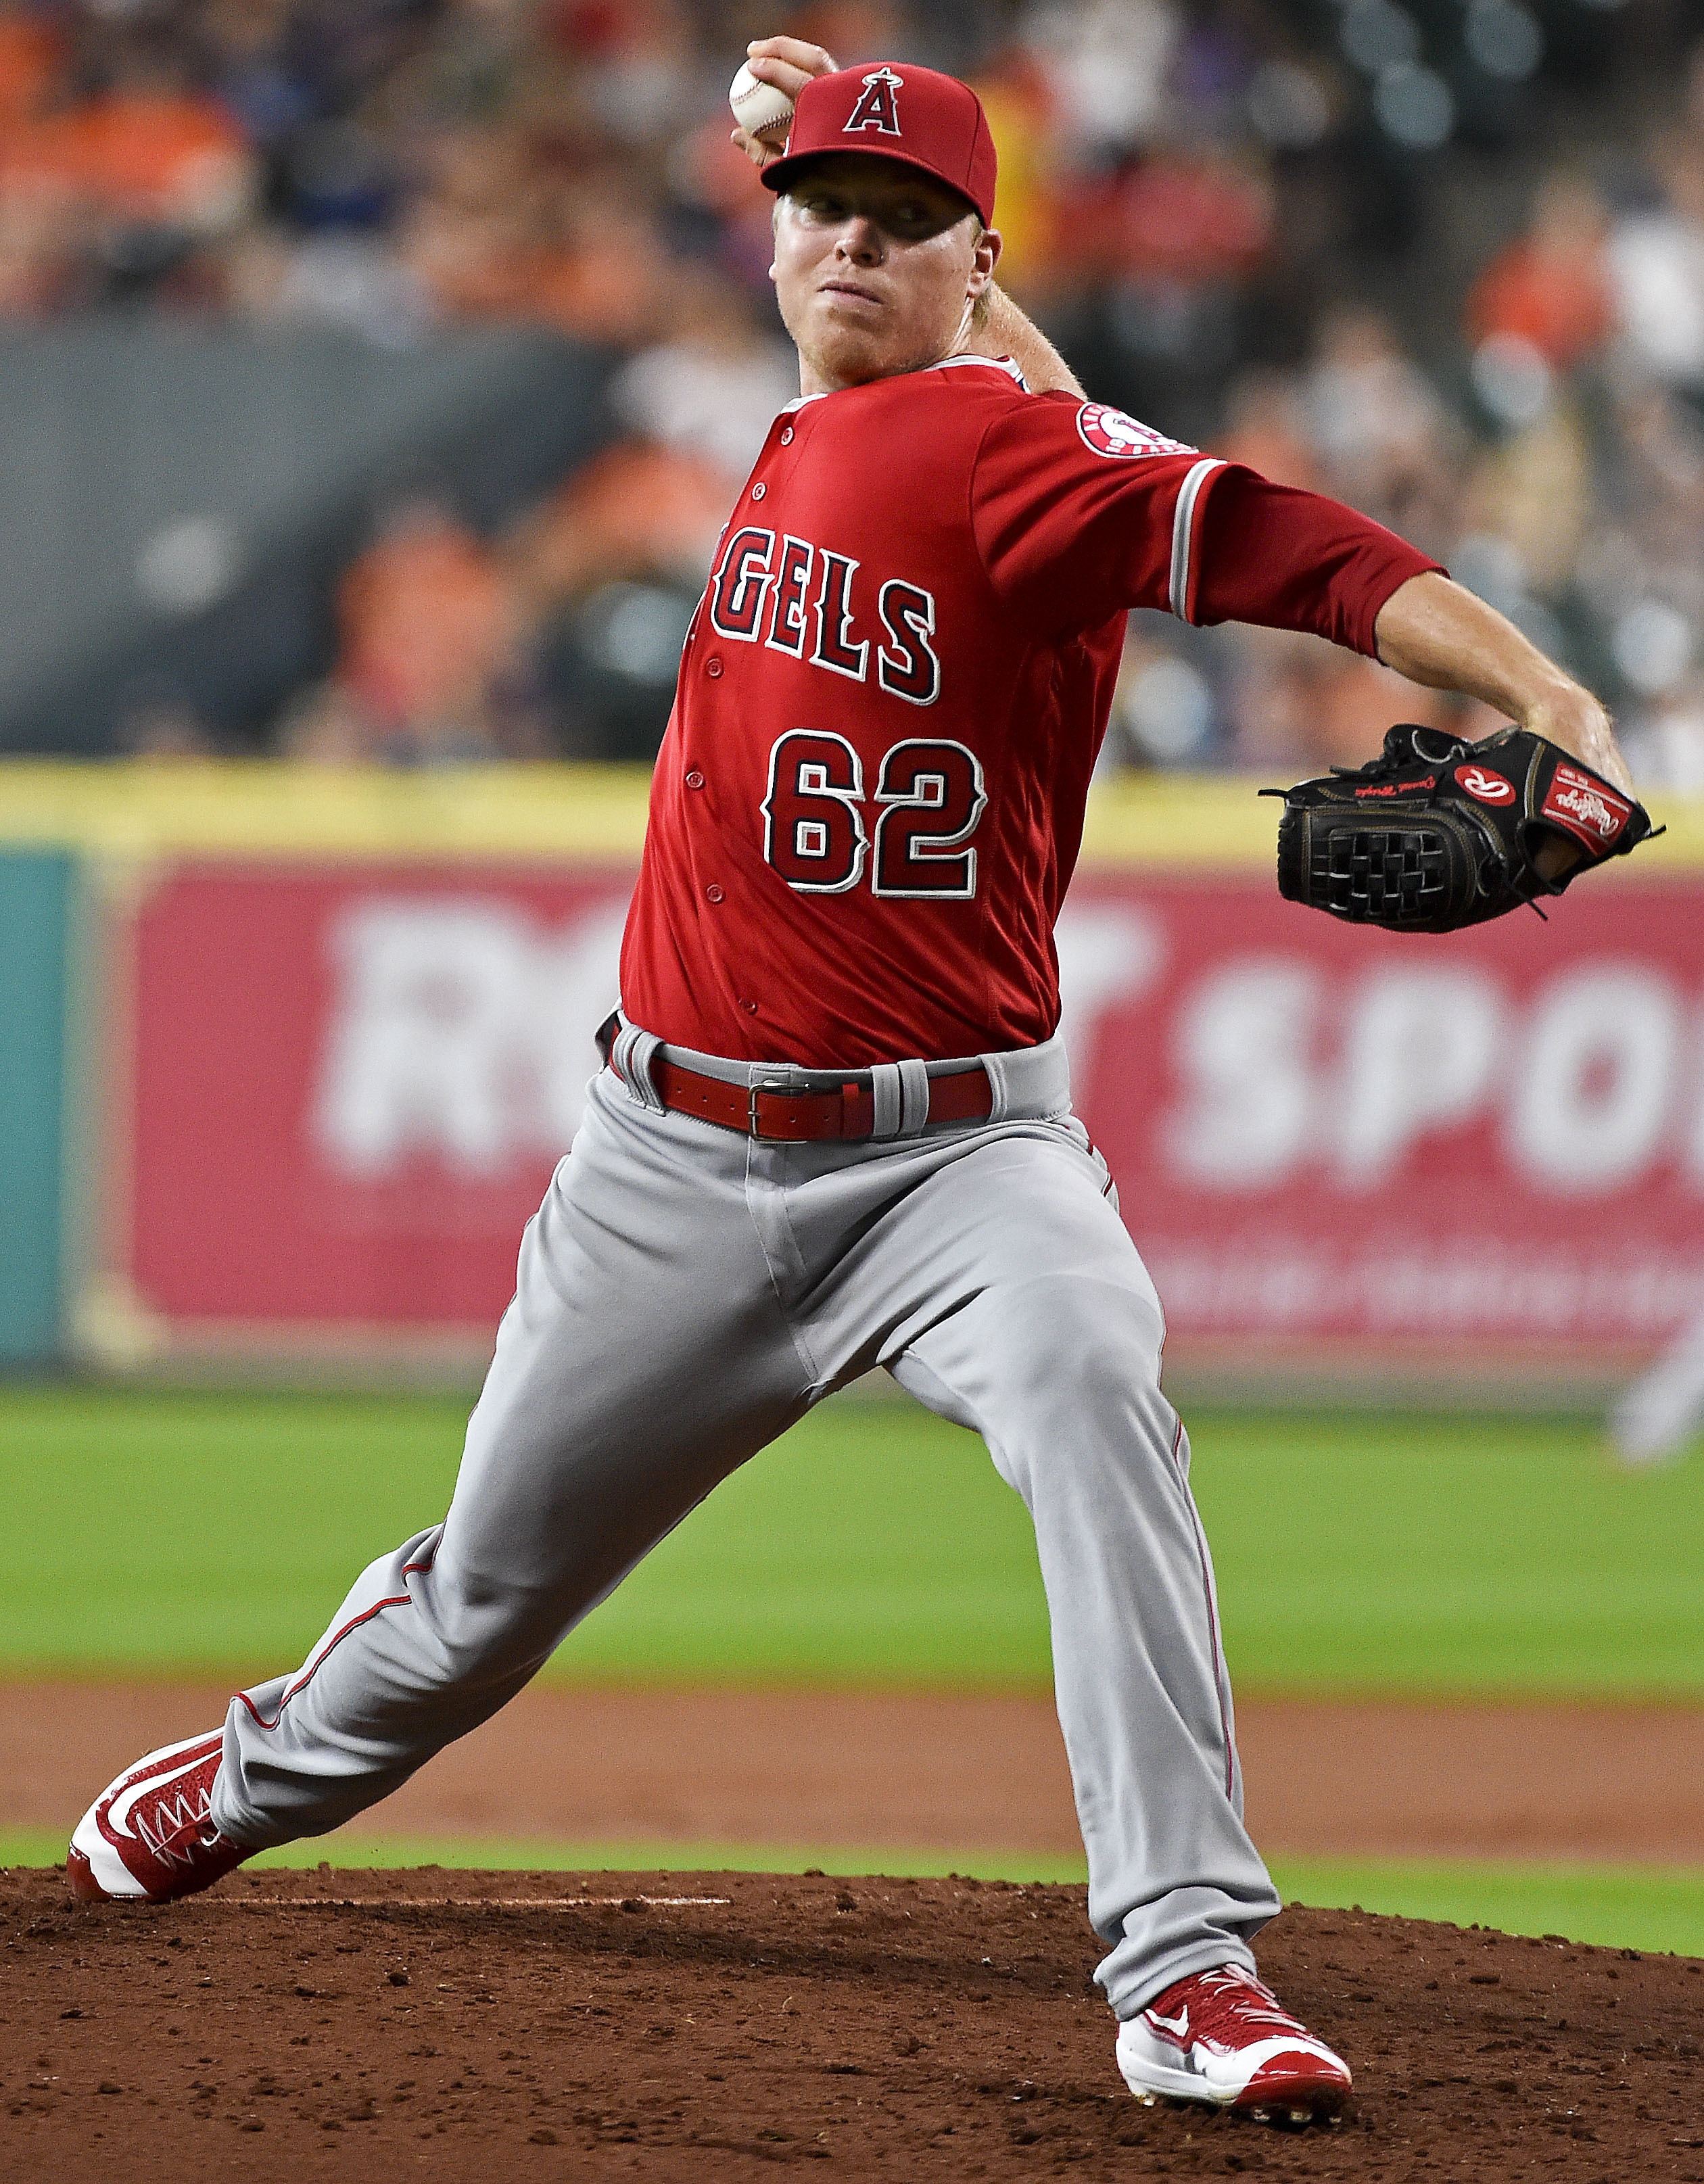 Los Angeles Angels starting pitcher Daniel Wright delivers in the second inning of a baseball game against the Houston Astros, Sunday, Sept. 25, 2016, in Houston. (AP Photo/Eric Christian Smith)